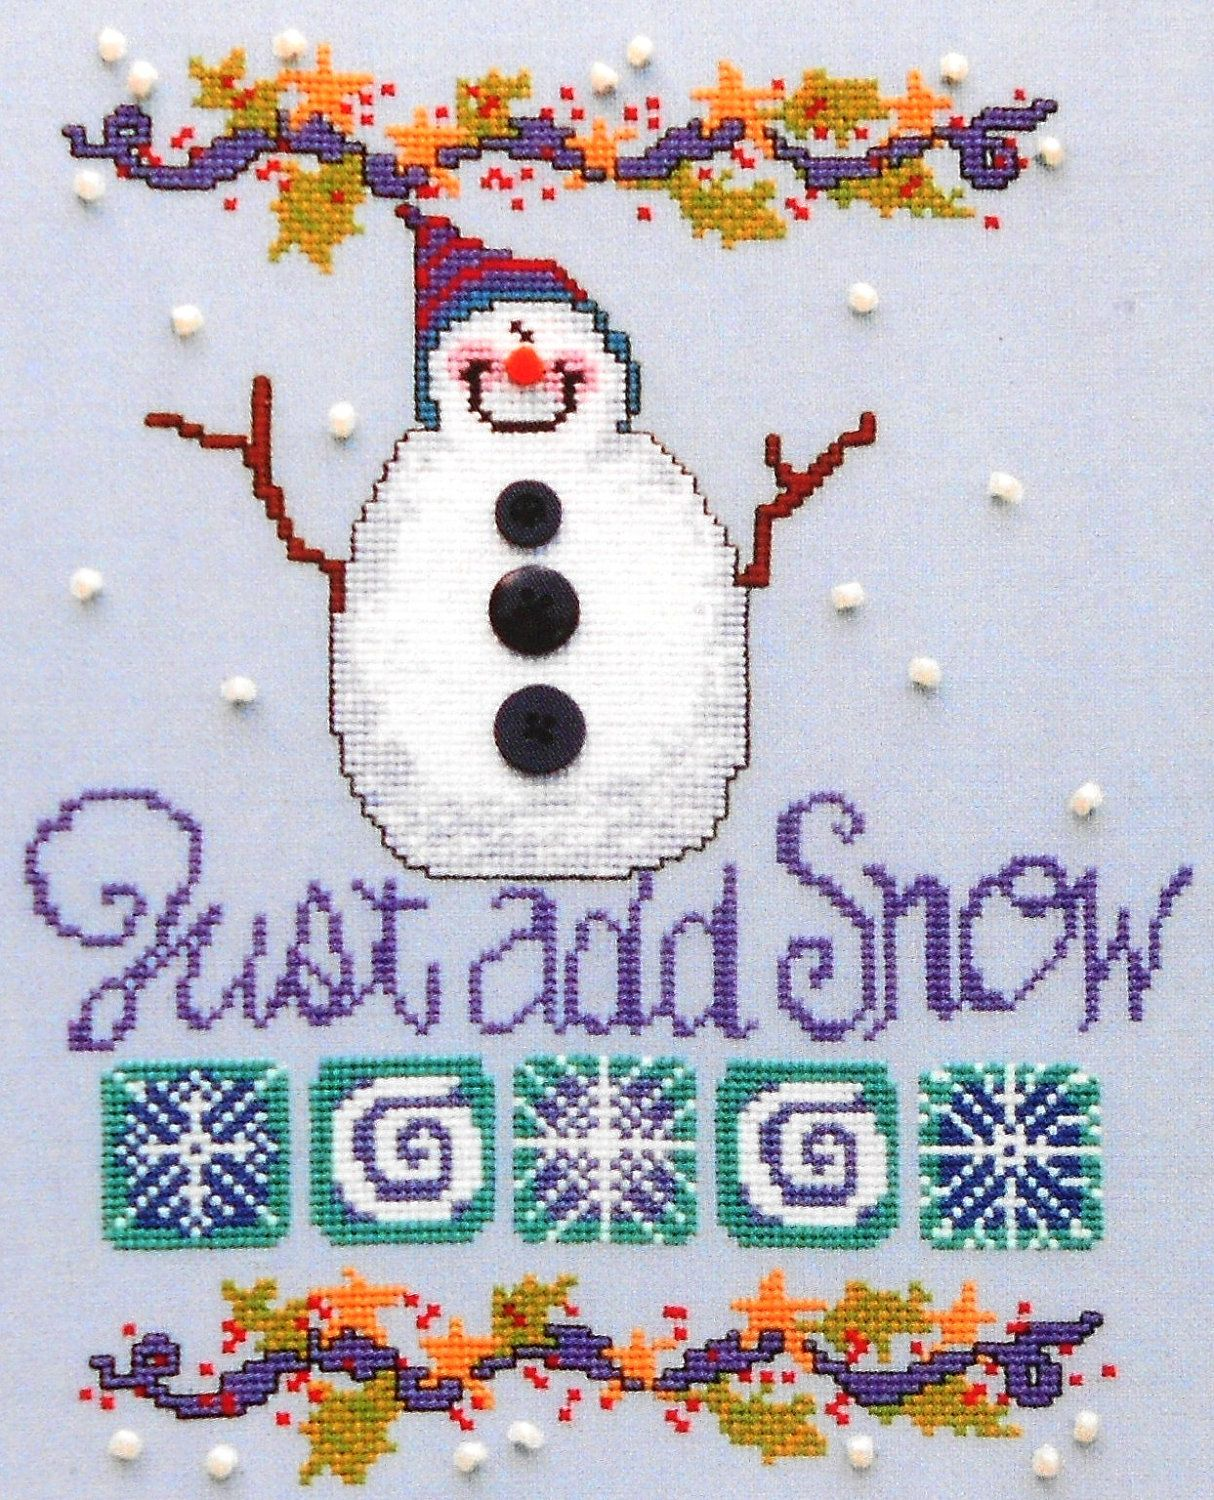 After The Snow Chart Counted Cross Stitch Patterns Needlework embroidery